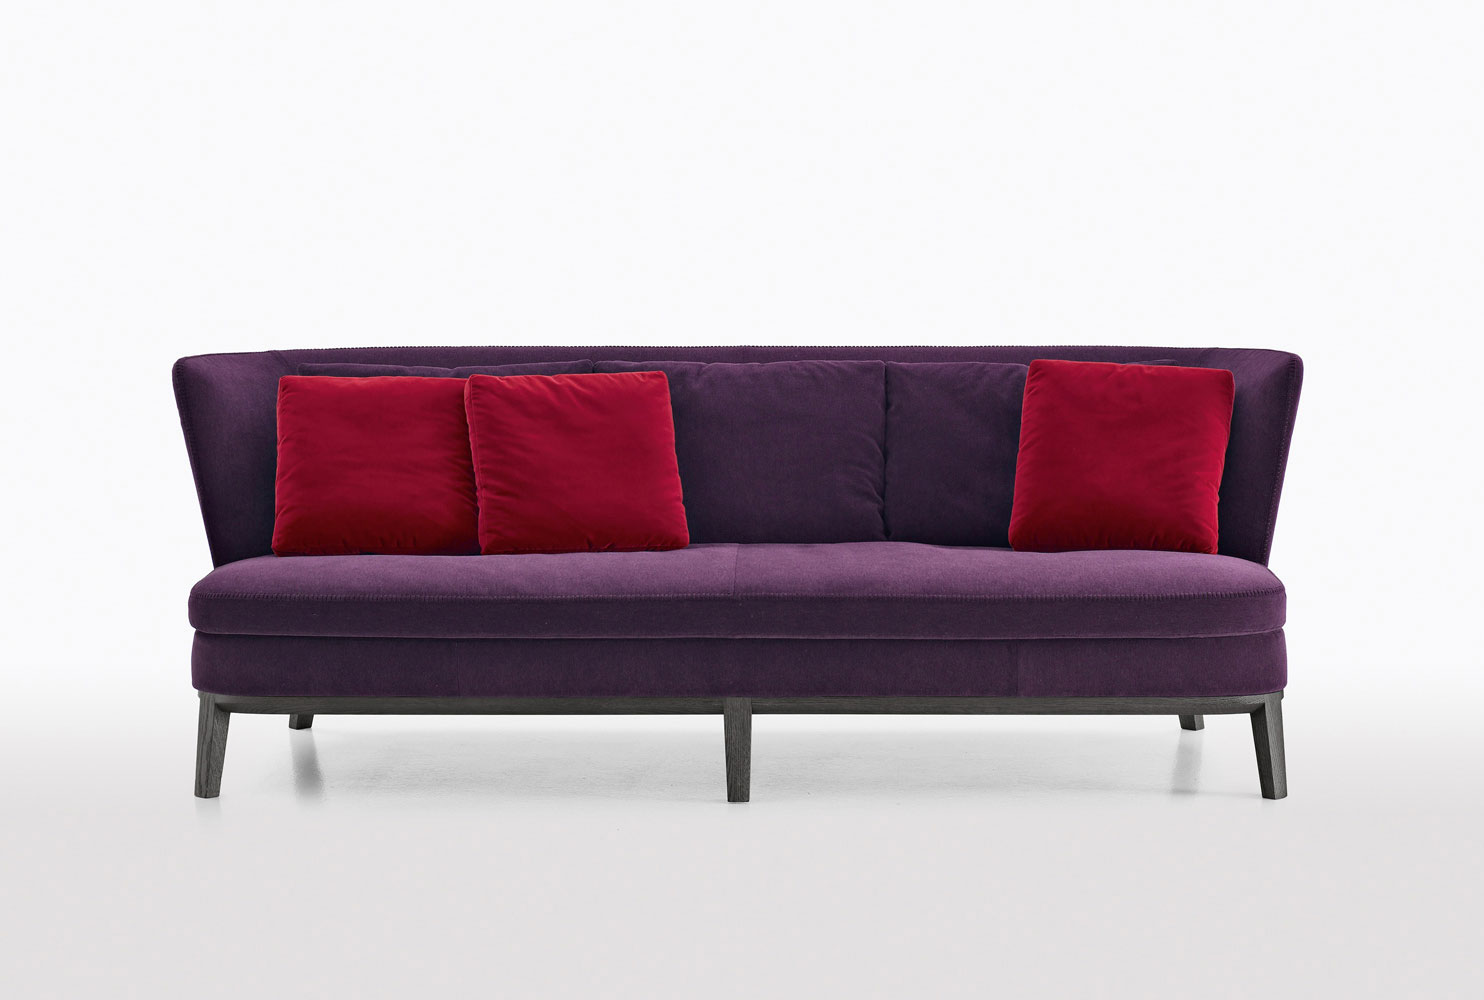 Keith de la plain maxalto for B b italia maxalto sofa